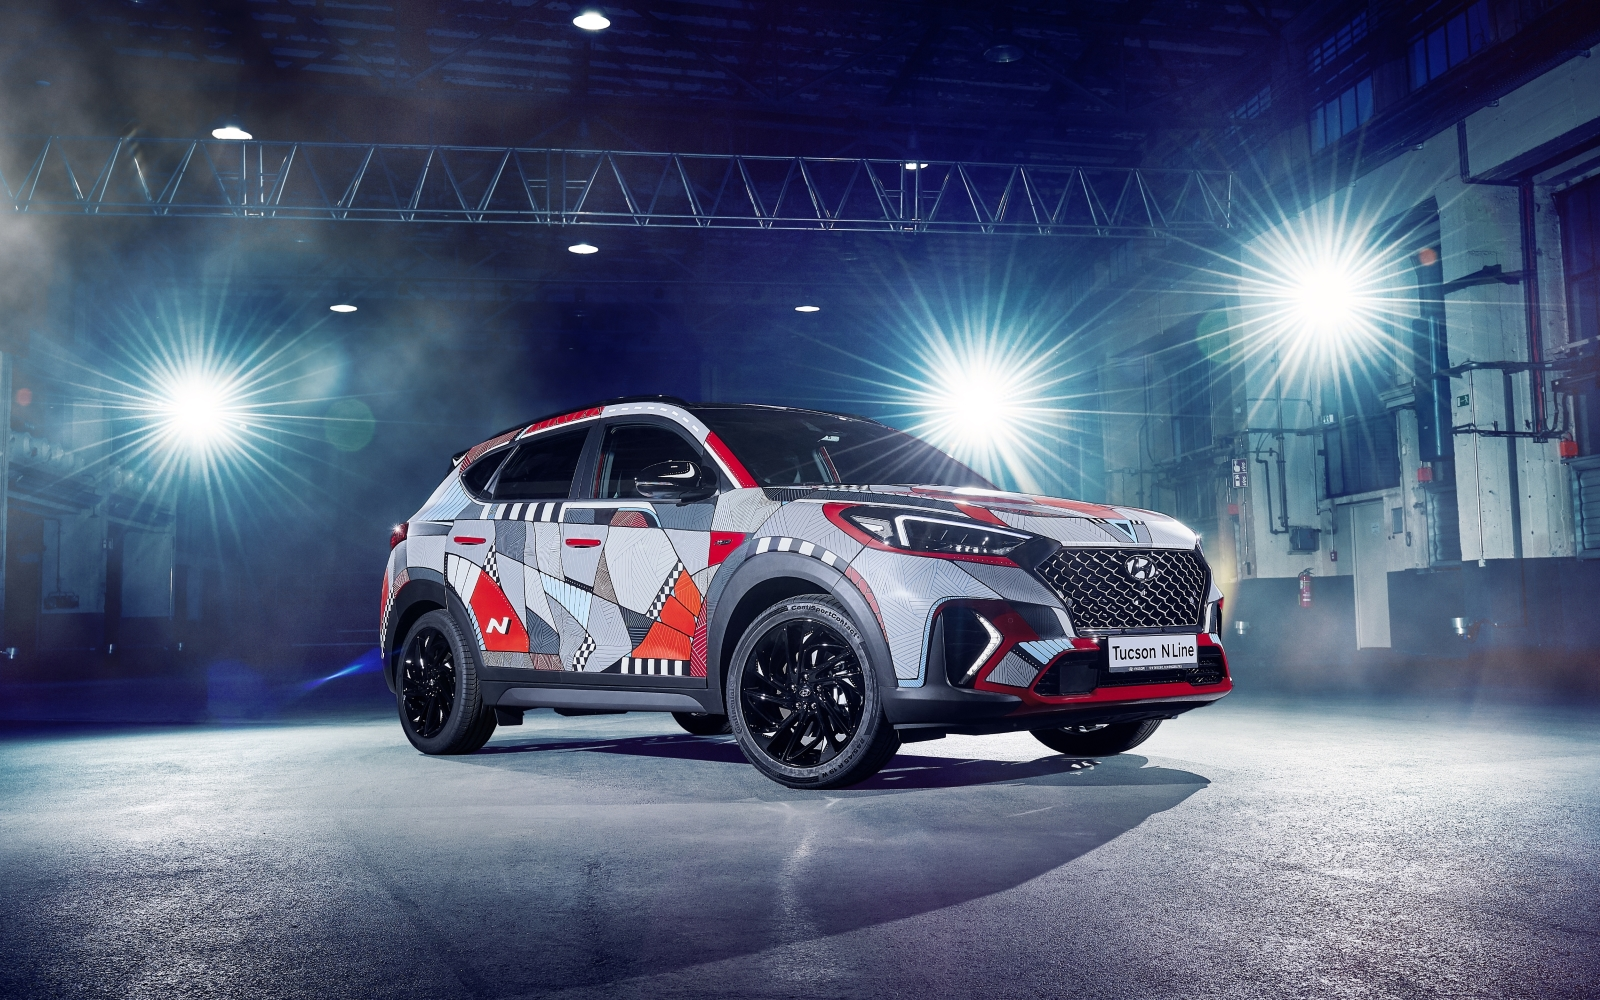 Hyundai celebrates launch of New Tucson N Line with unique art project